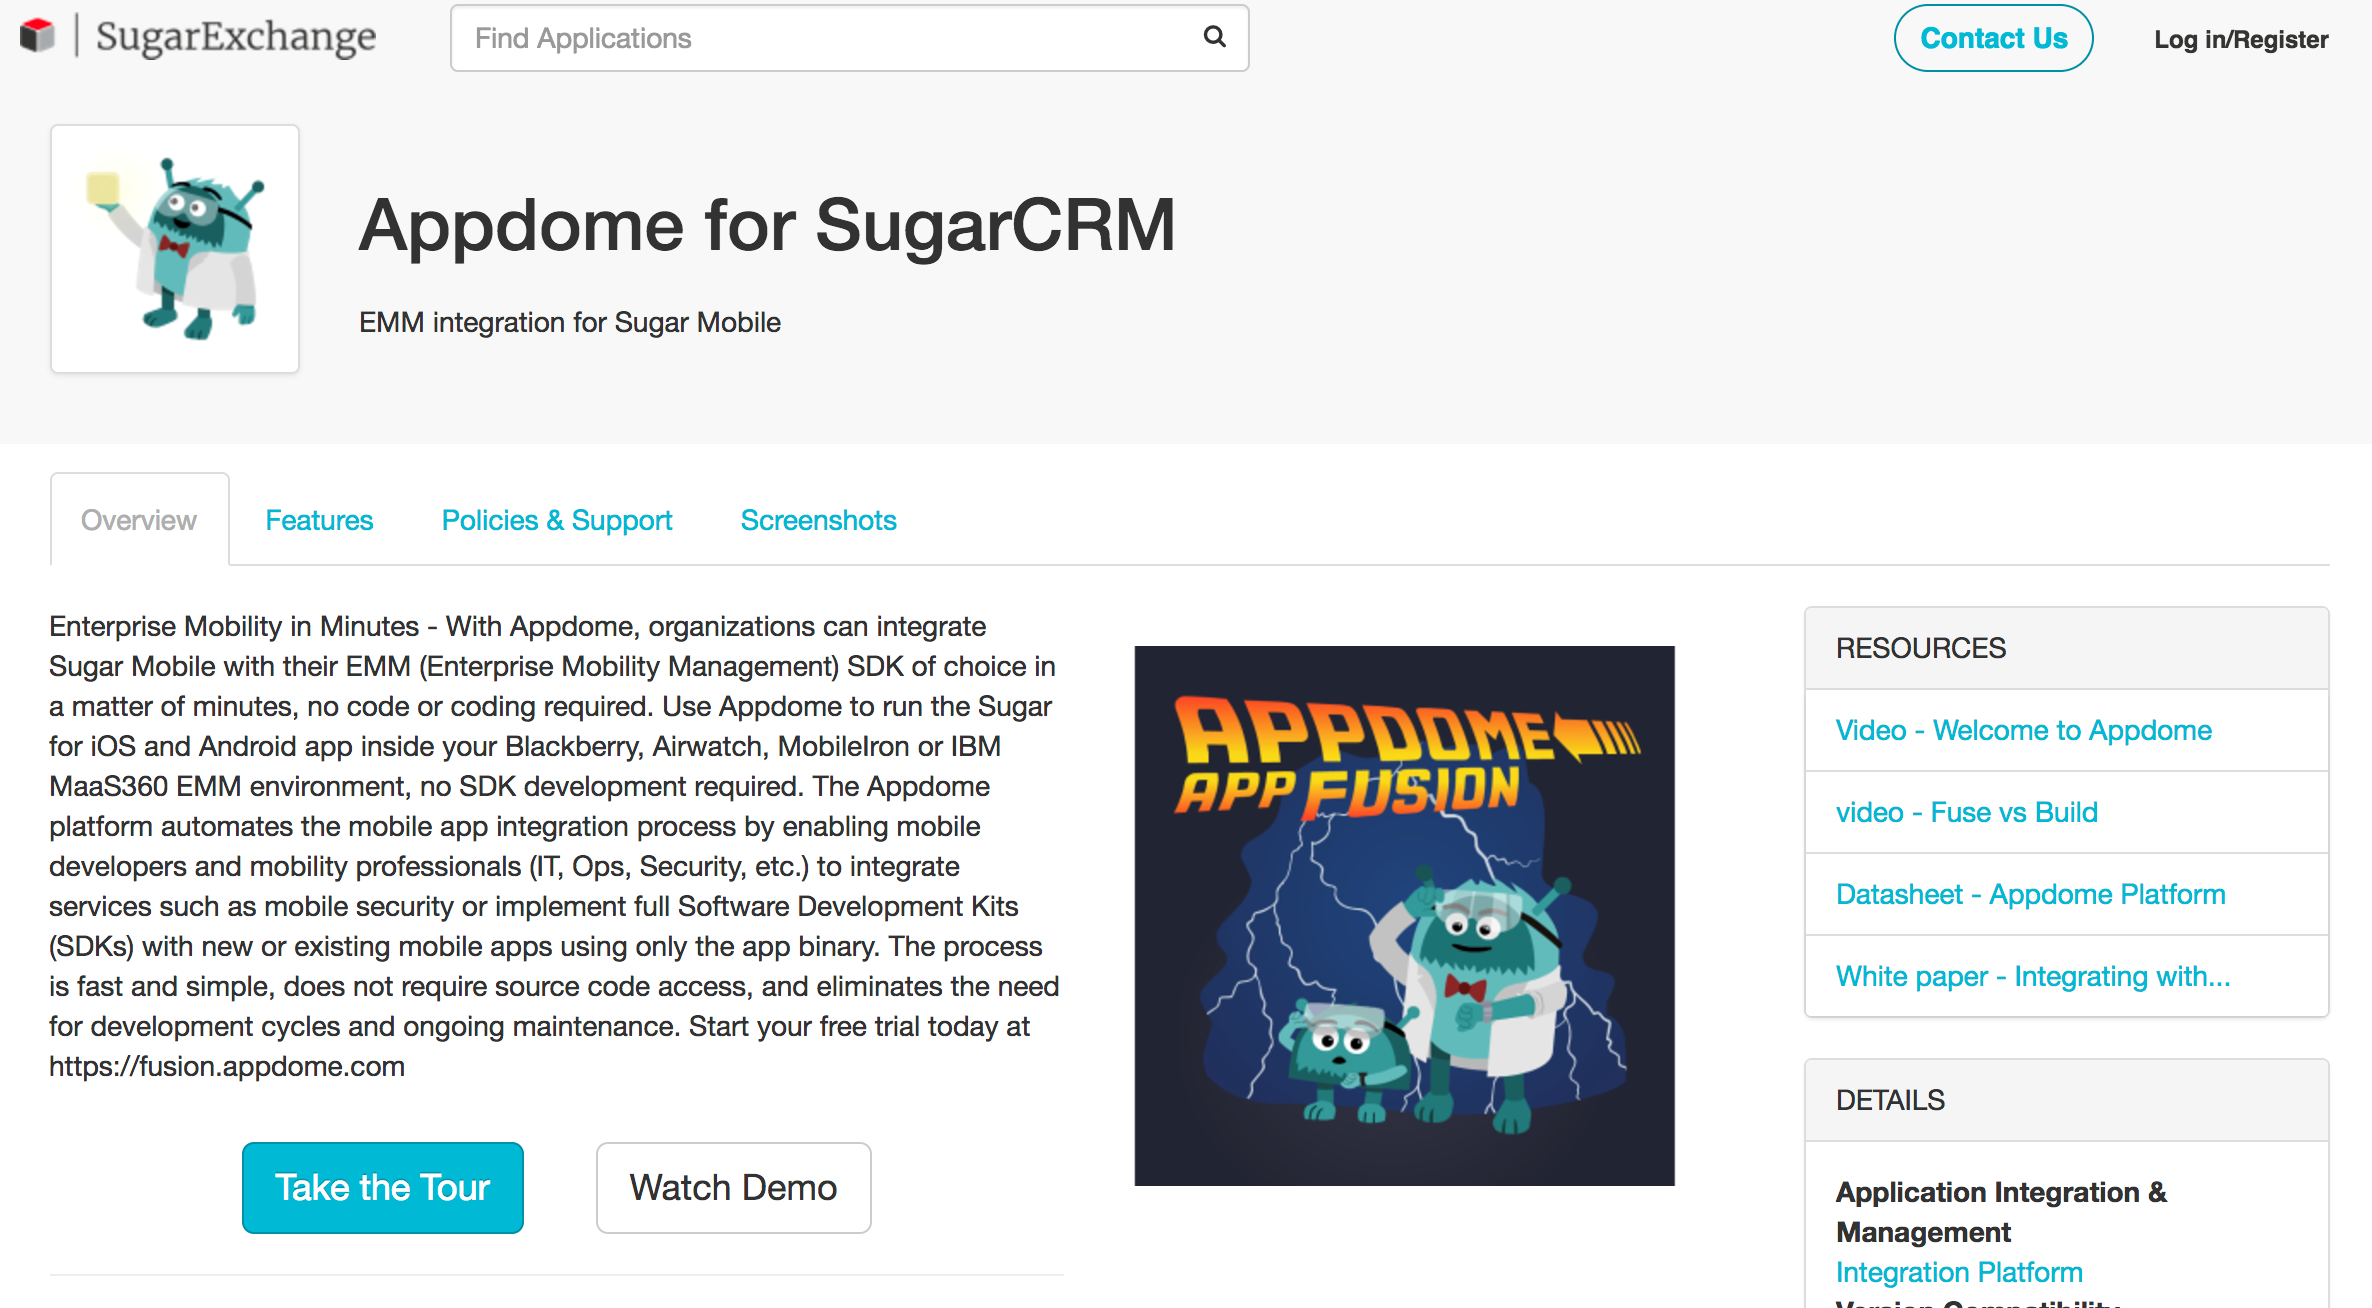 Appdome-welcomes-sugarcrm-to-no-code-integration-2.png